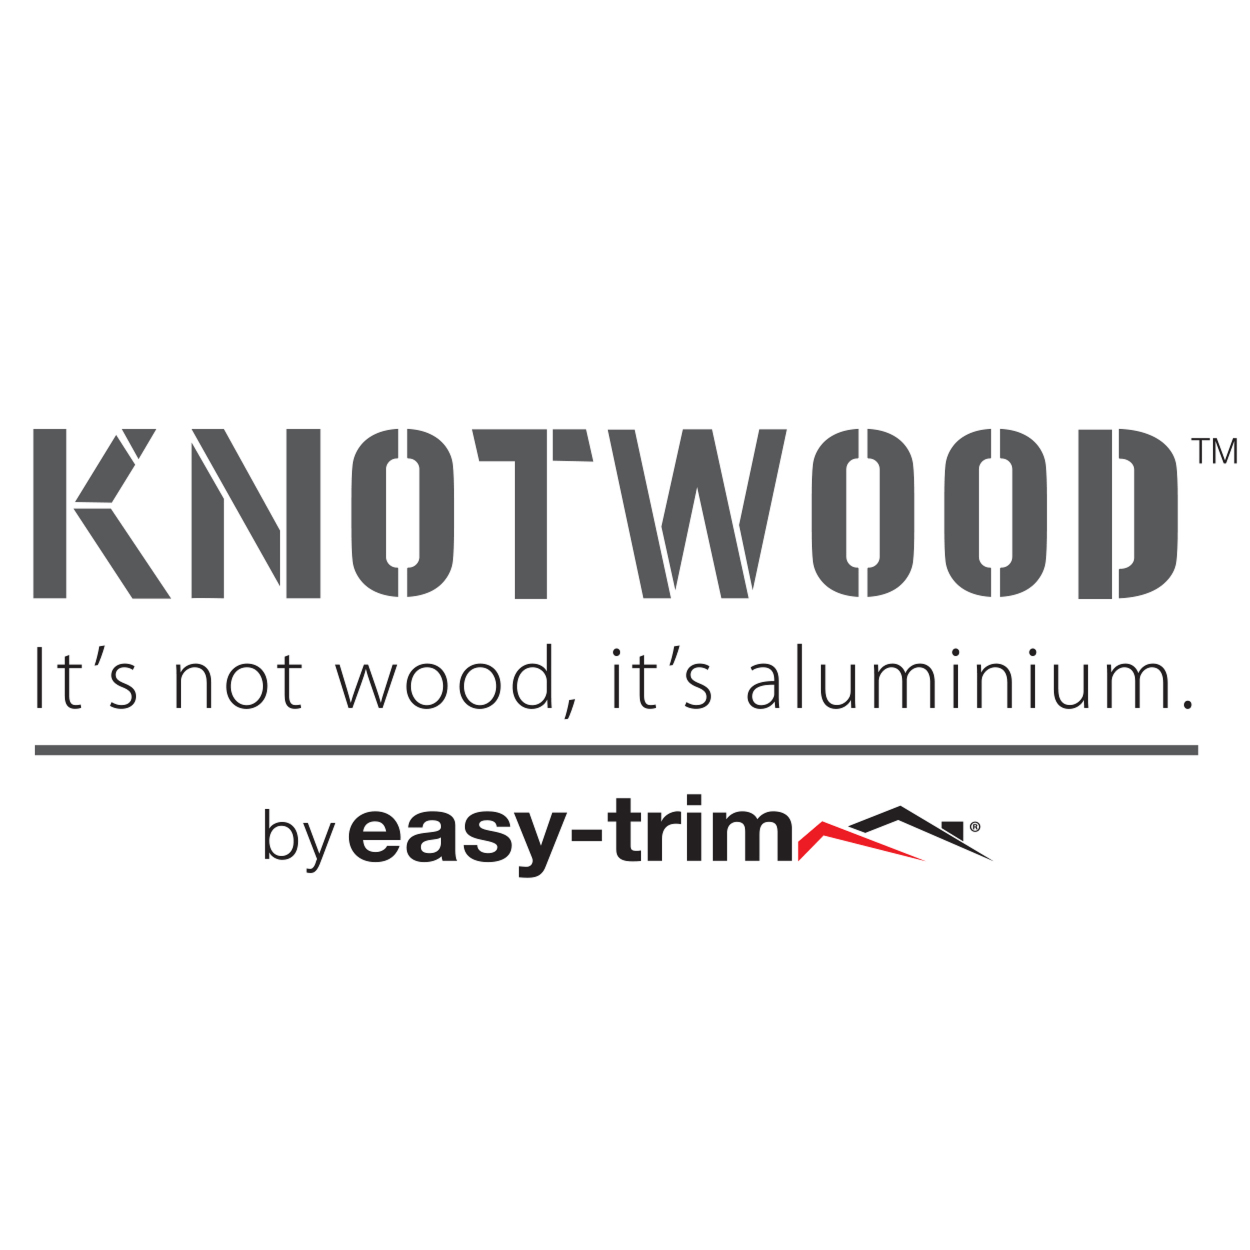 Knotwood by easy-trim